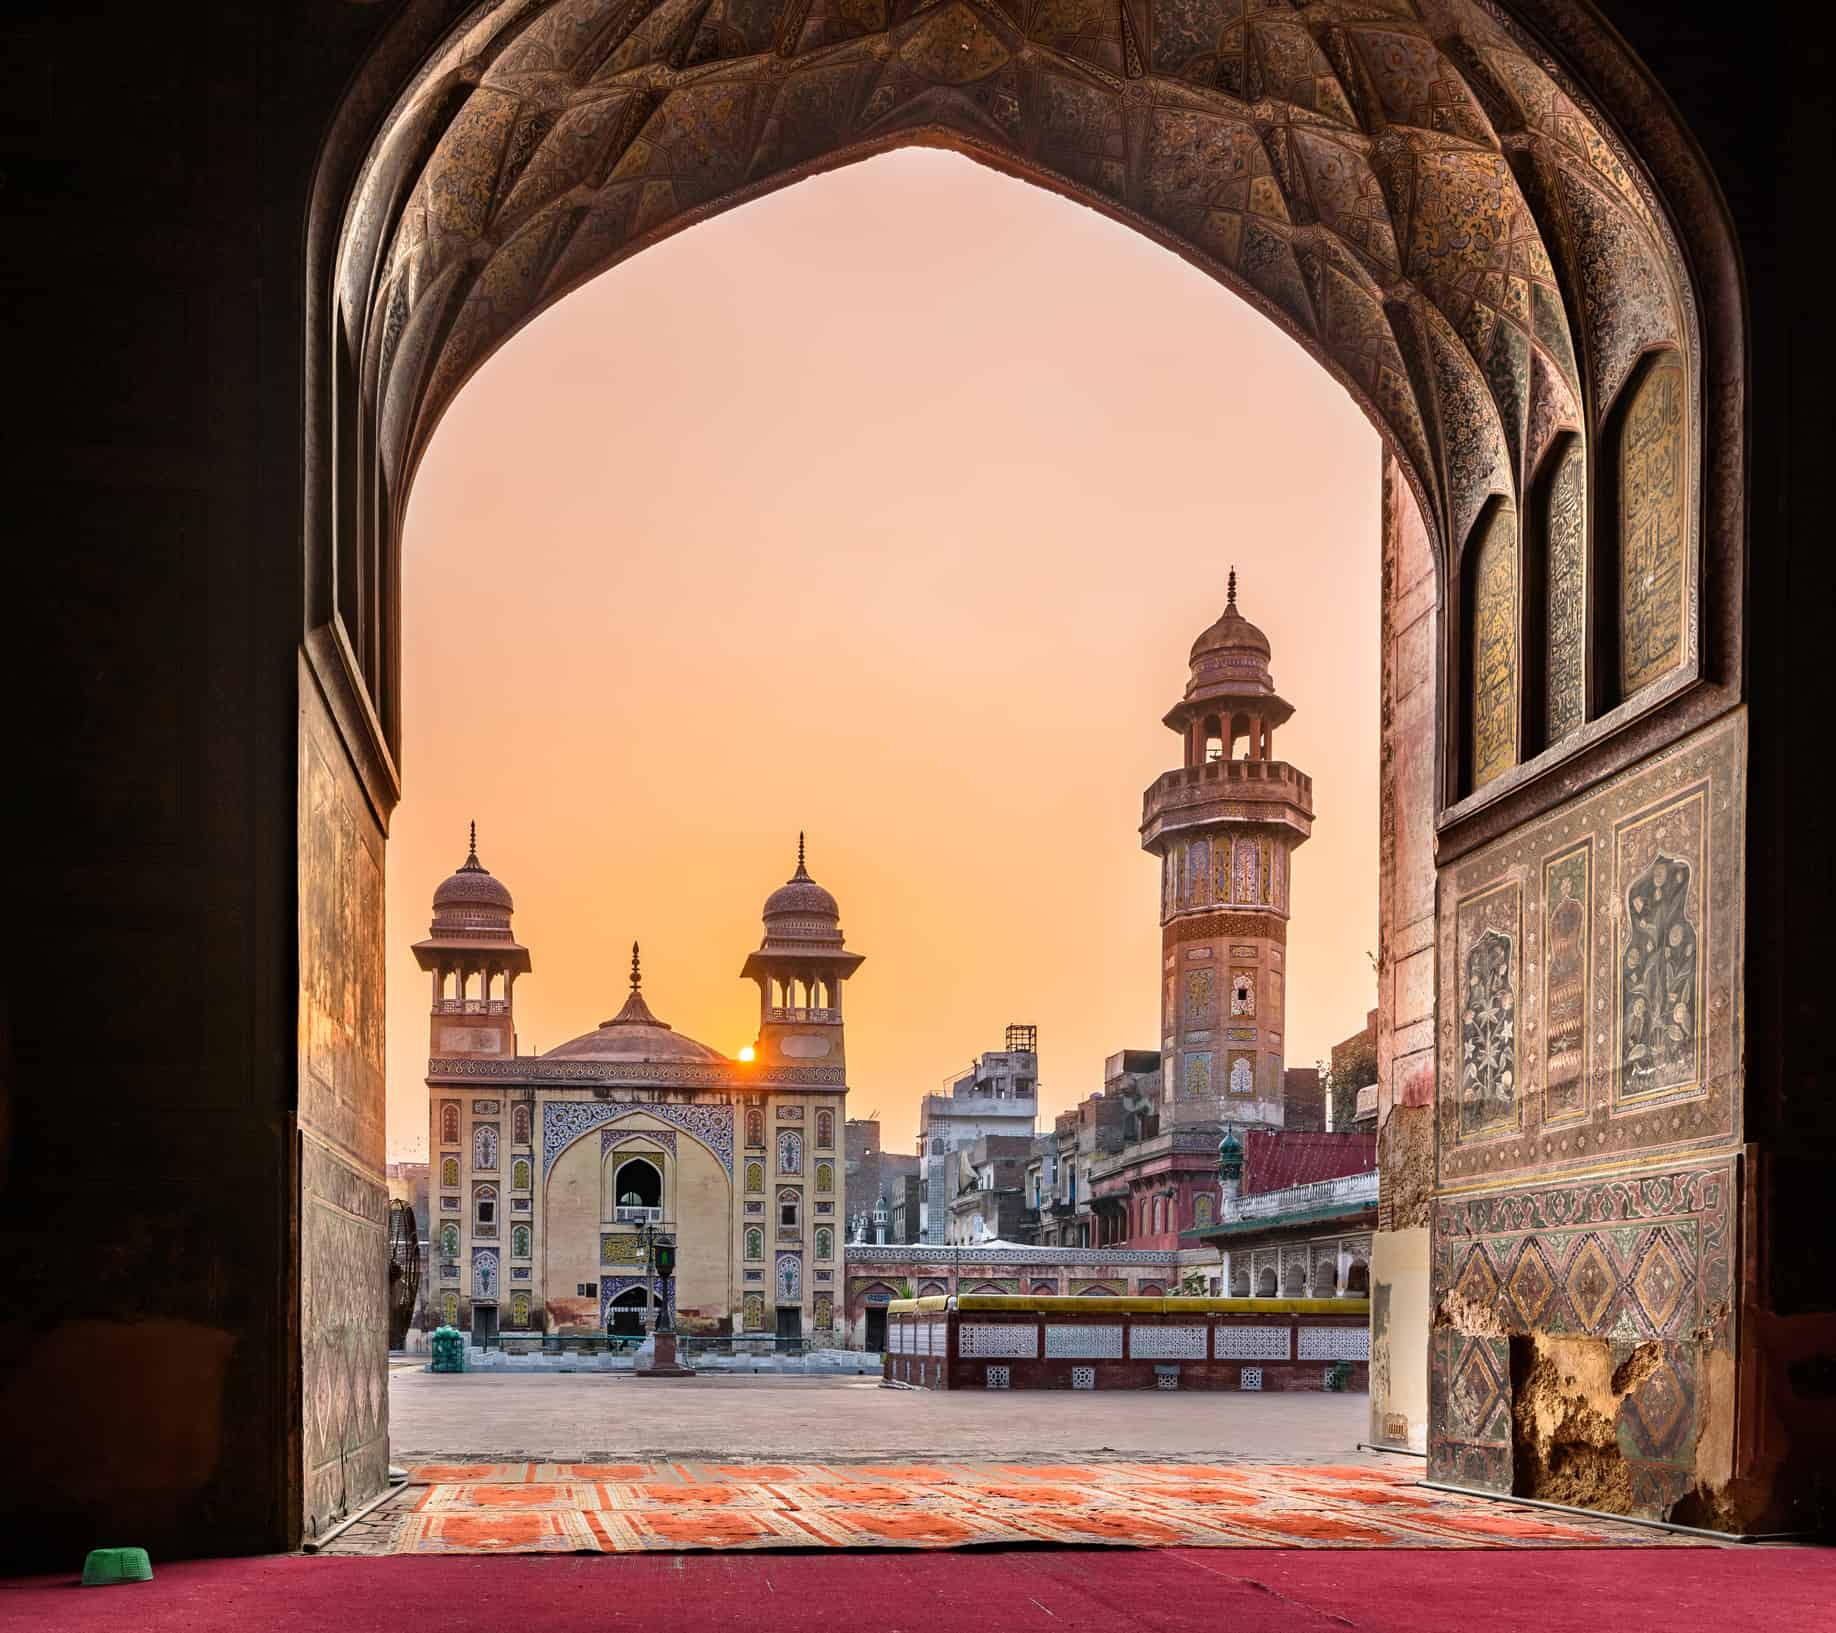 Wazir Khan Mosque Lahore Pakistan